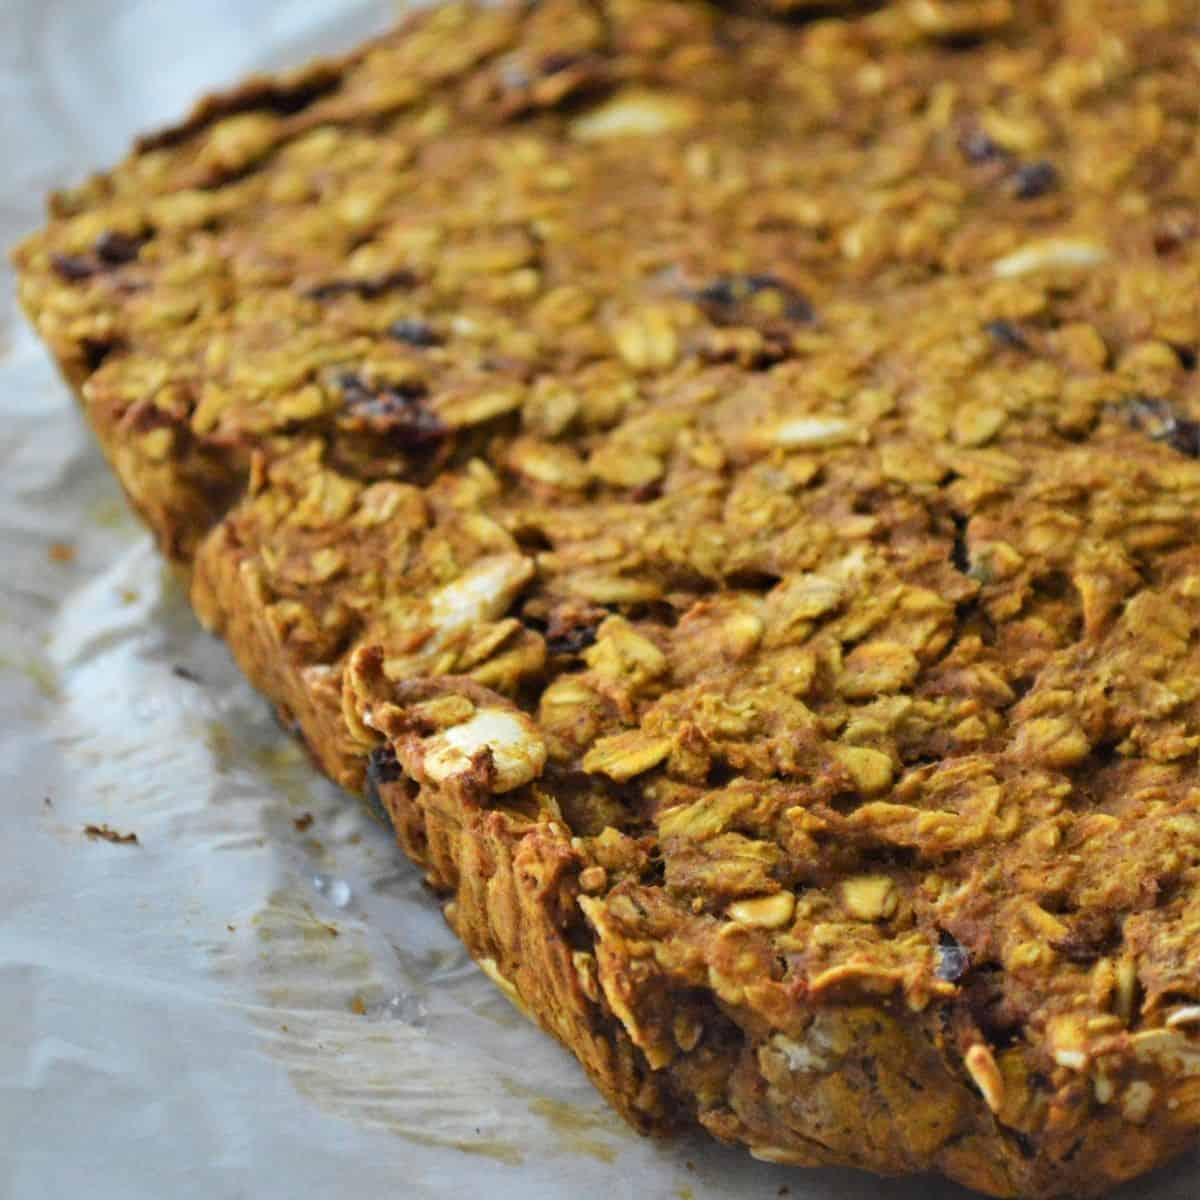 Oat bars on parchment paper waiting to be cut into serving pieces.